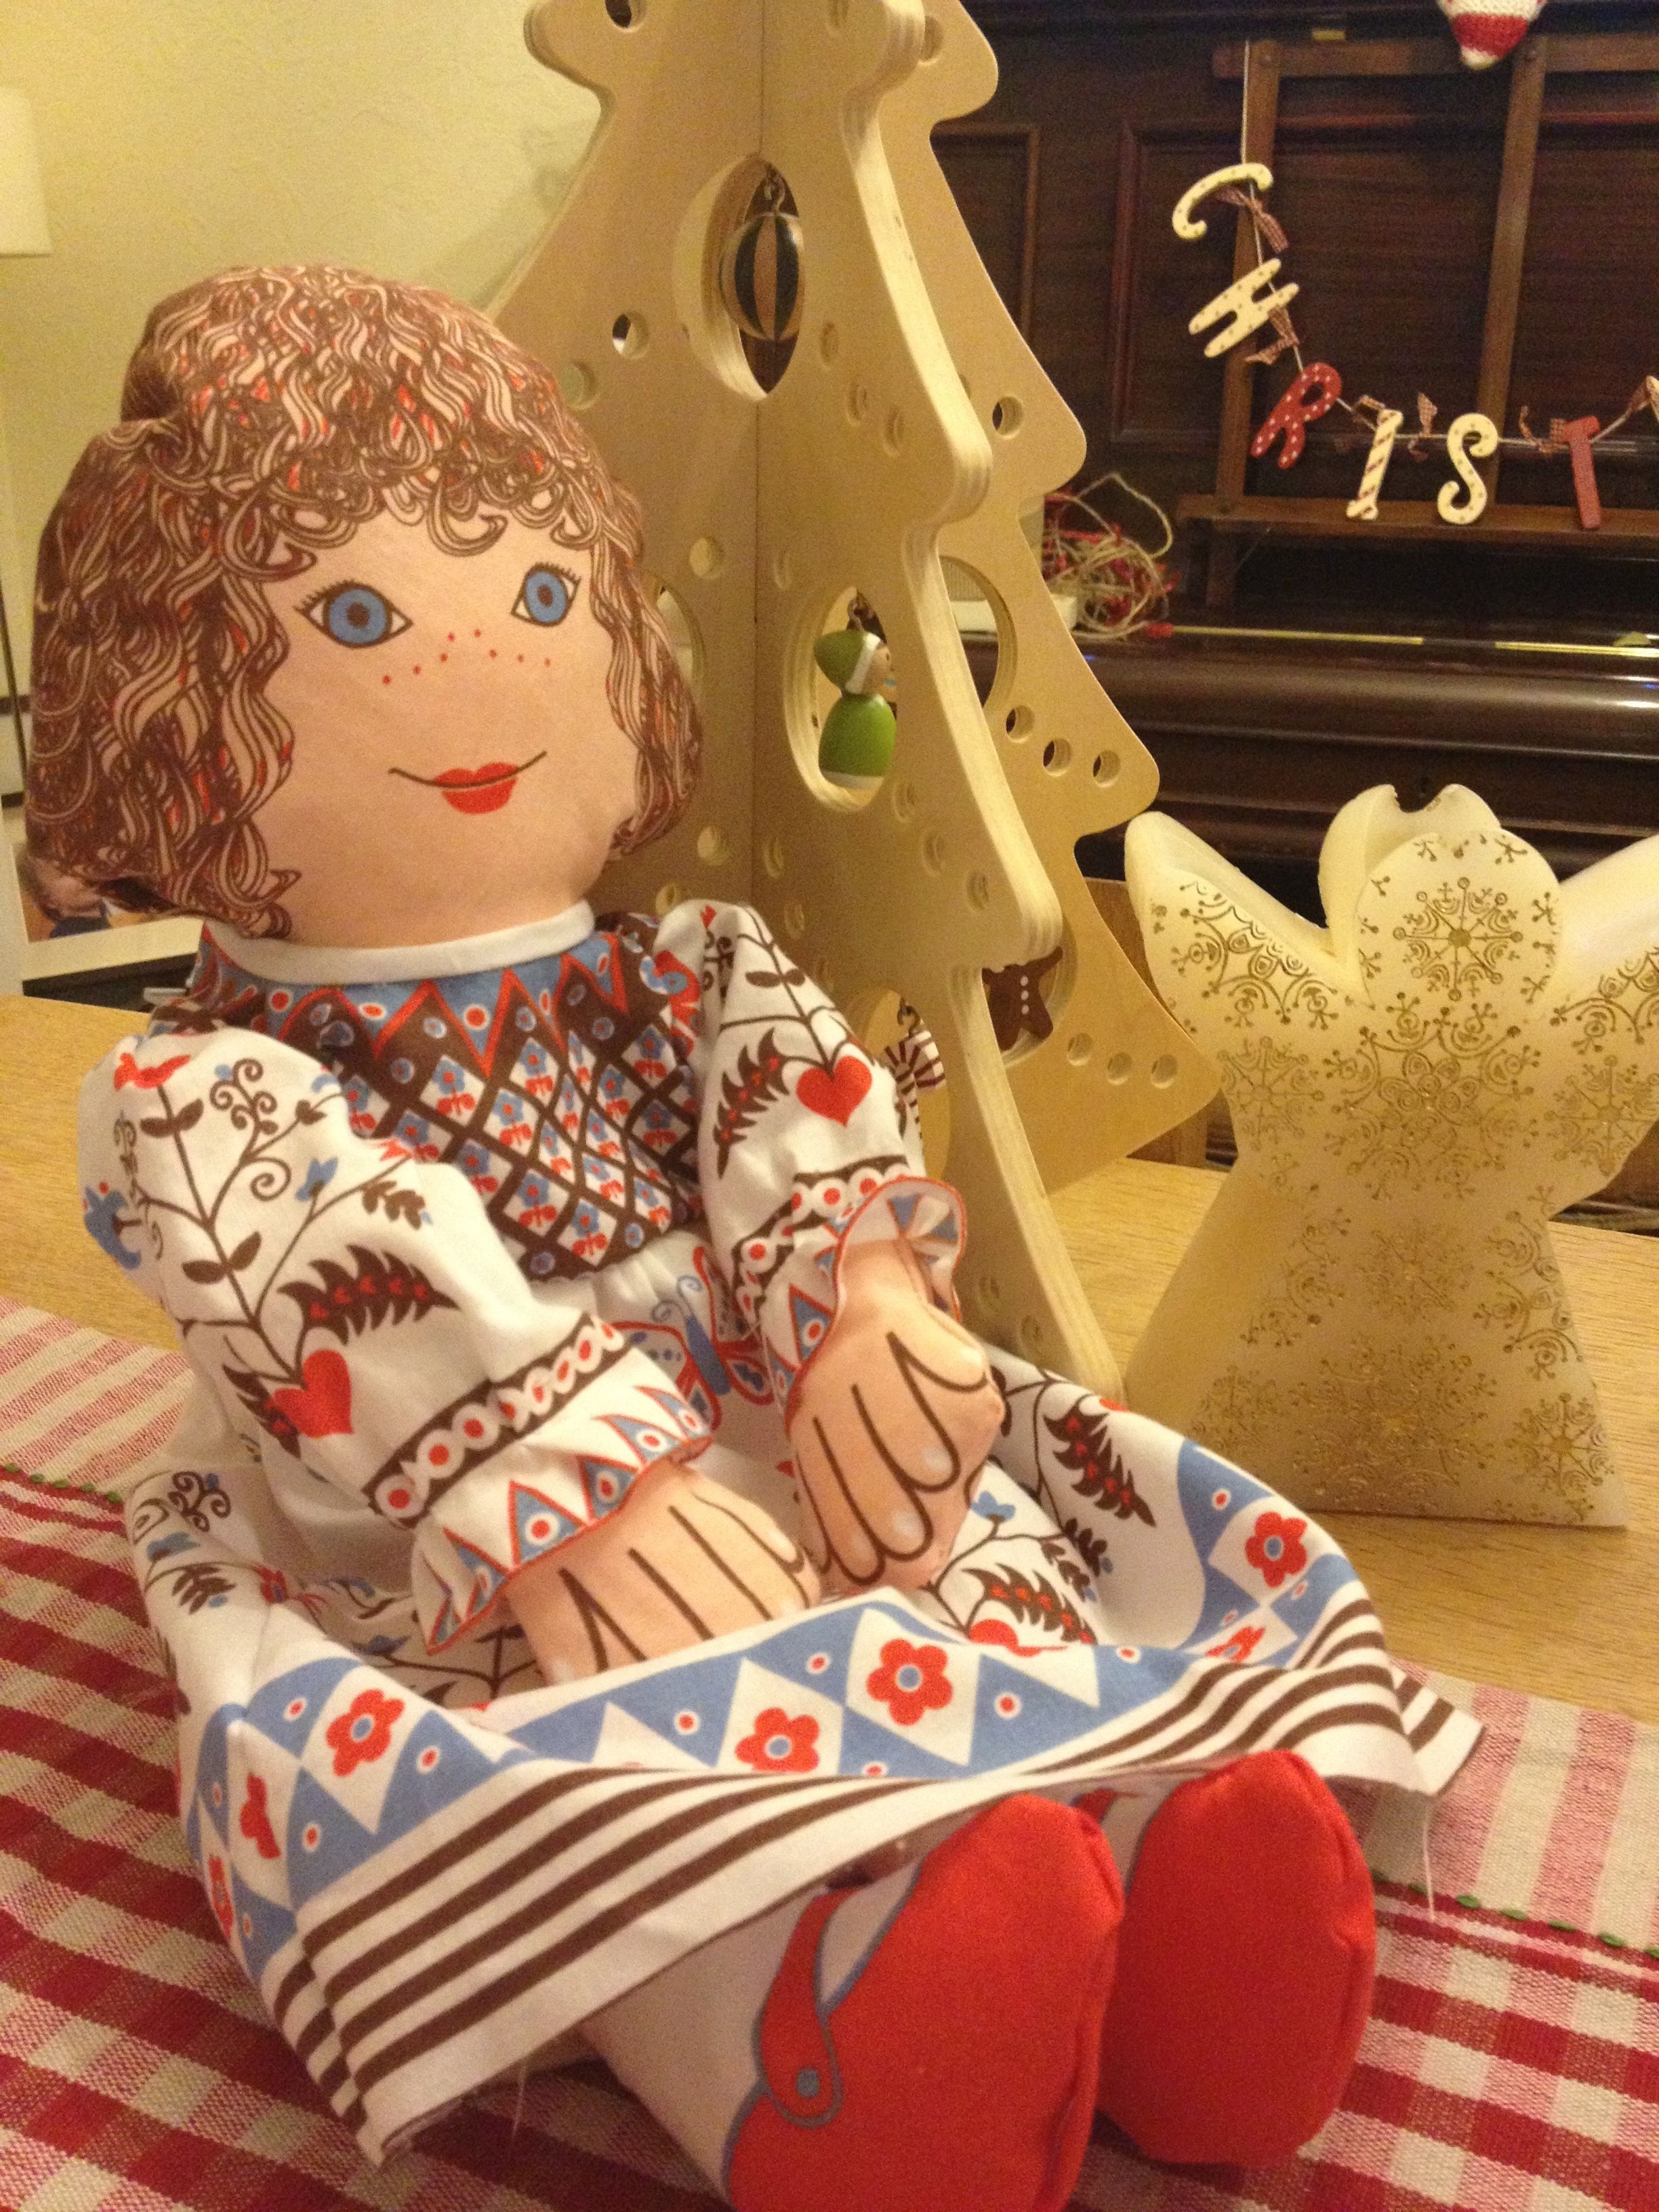 I made this #clothkits doll in my sewing group. My little girl loves it. A classic 70's design for our 70's house!